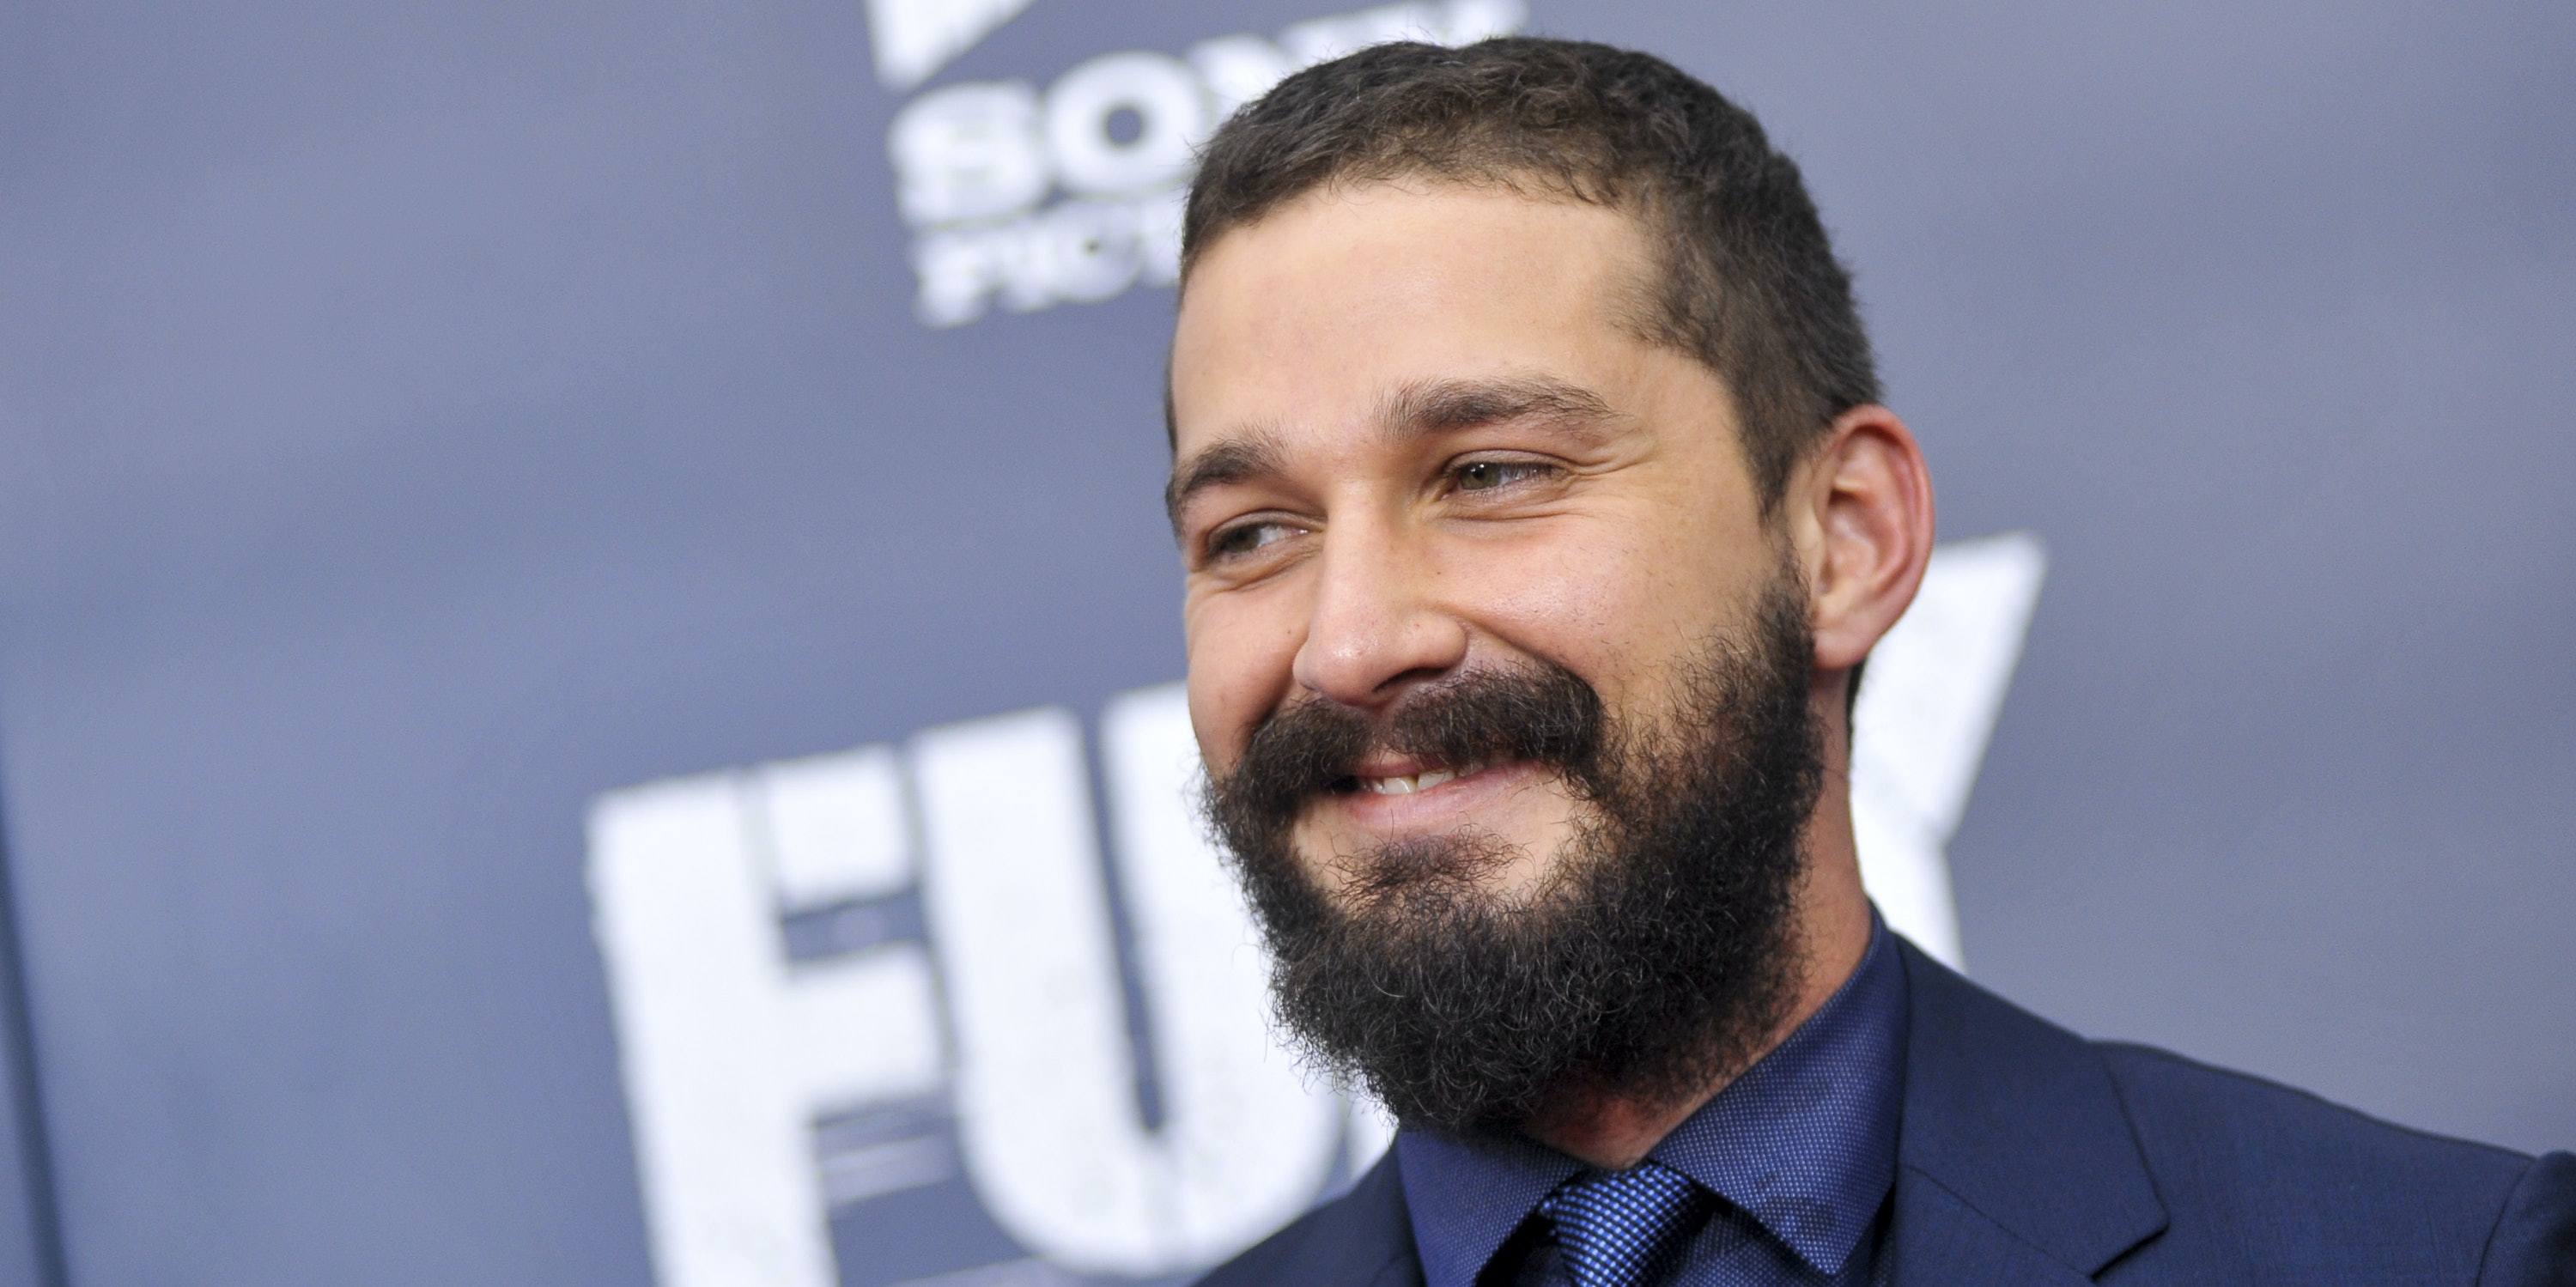 Shia LaBeouf poses for photographers on the red carpet during the 'The Fury' Washington D.C. premiere at The Newseum on October 15, 2014 in Washington, DC.